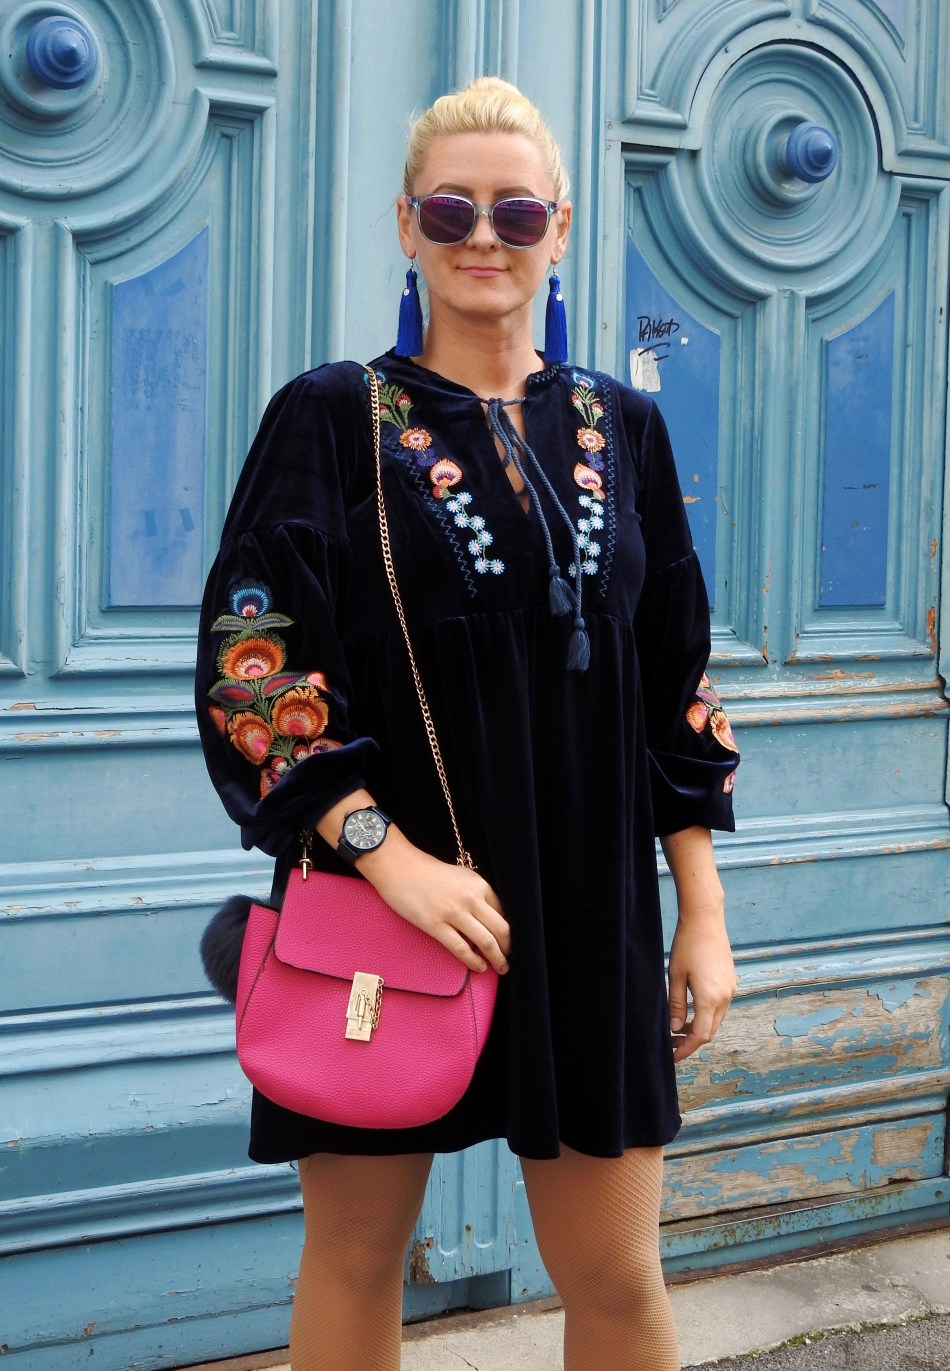 Velvet-Samt-Kleid-Embroidered-Blumenstickereien-Tassels-Earrings-Chloe-Drew-Bag-carrieslifestyle-Tamara-Prutsch